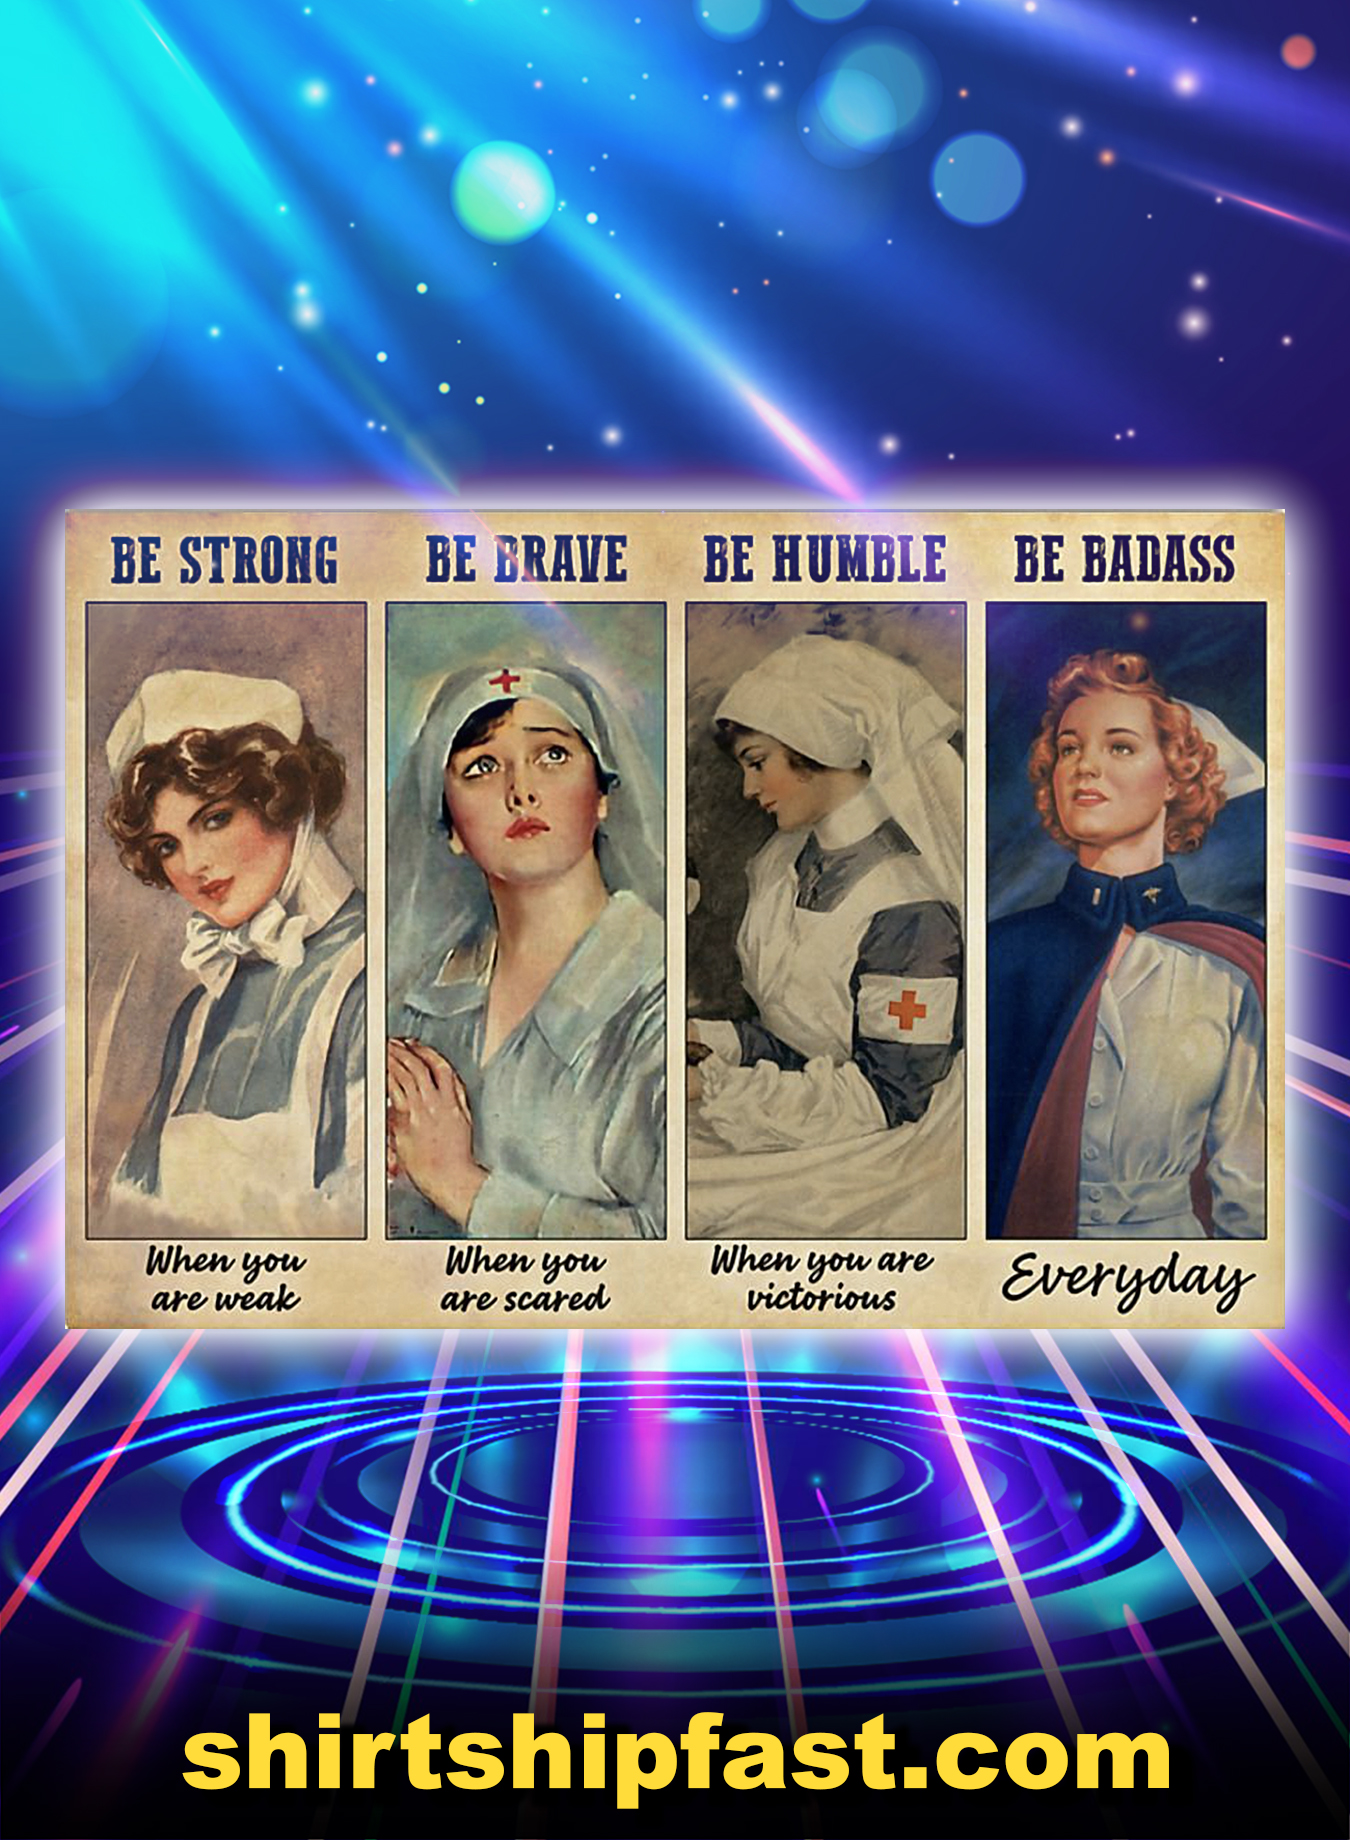 Nurse Women Be strong be brave be humble be badass poster - A3